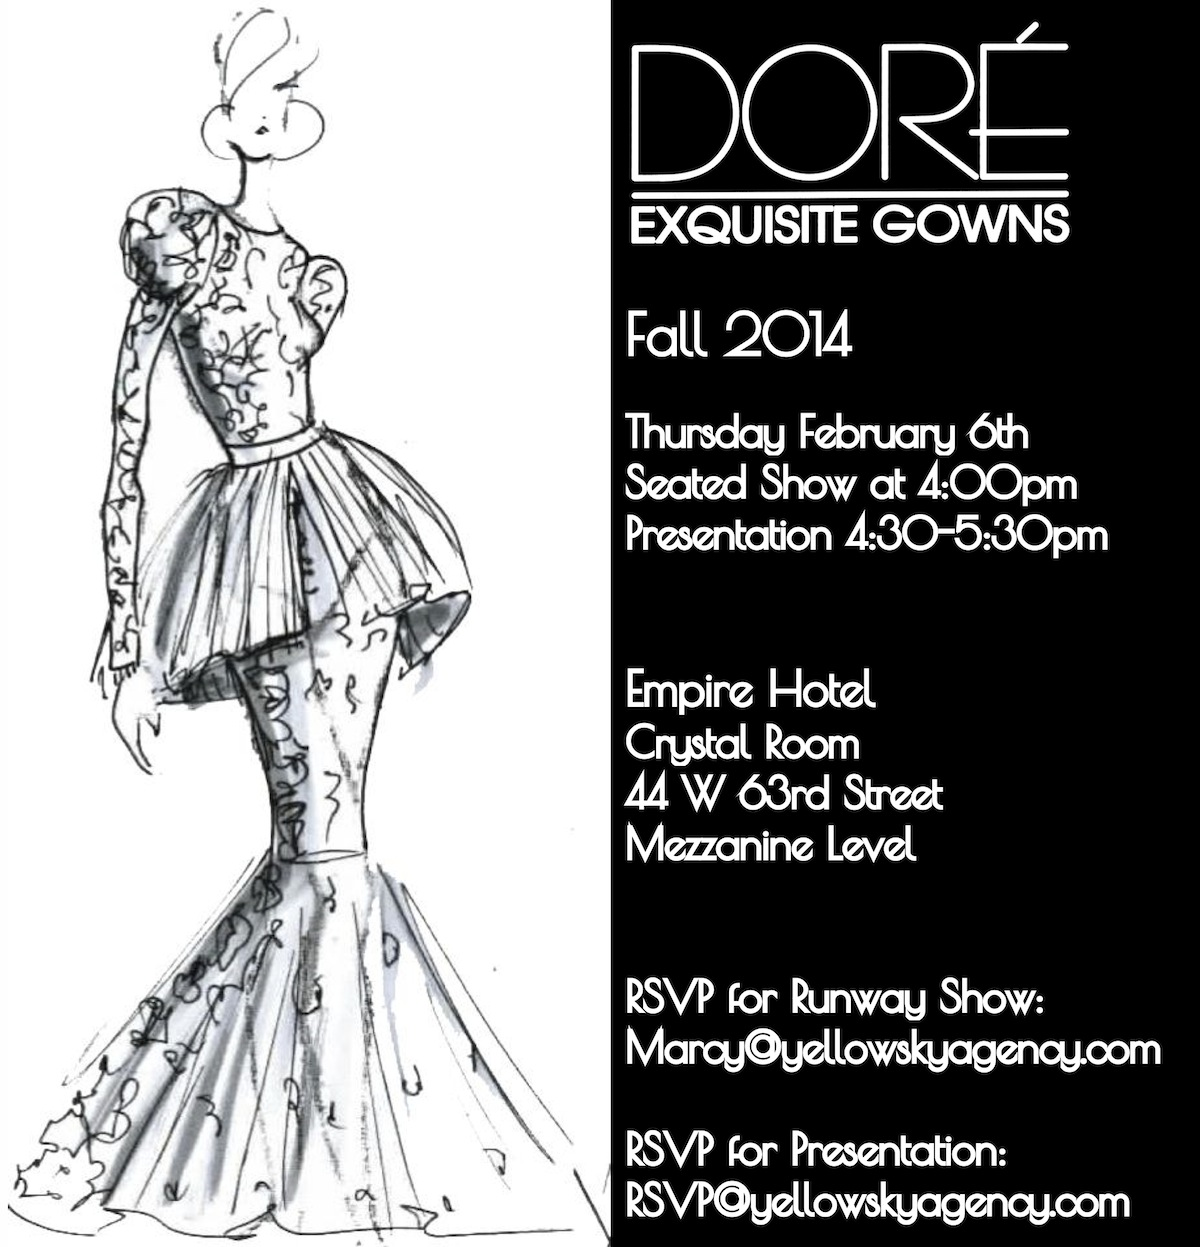 5 Lucky Women S Mafia Members Can Win Tickets To The Dore Designs Nyfw Event Women S Mafia Social Club And Online Magazine Featuring Fashion Events Beauty And Brilliant People